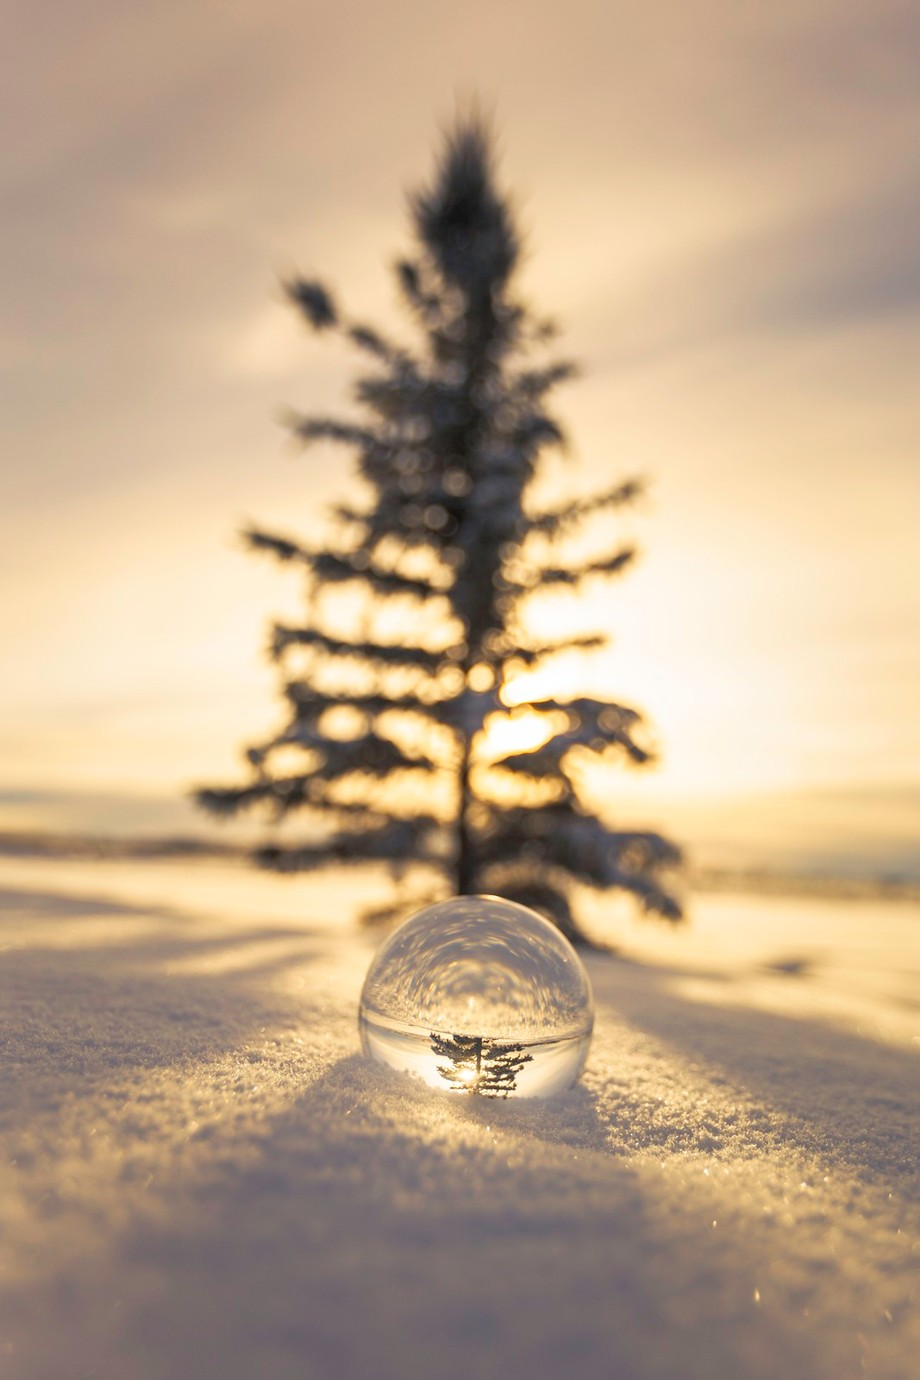 Crystal ball by PaulLavoieImages - The Cold Winter Photo Contest